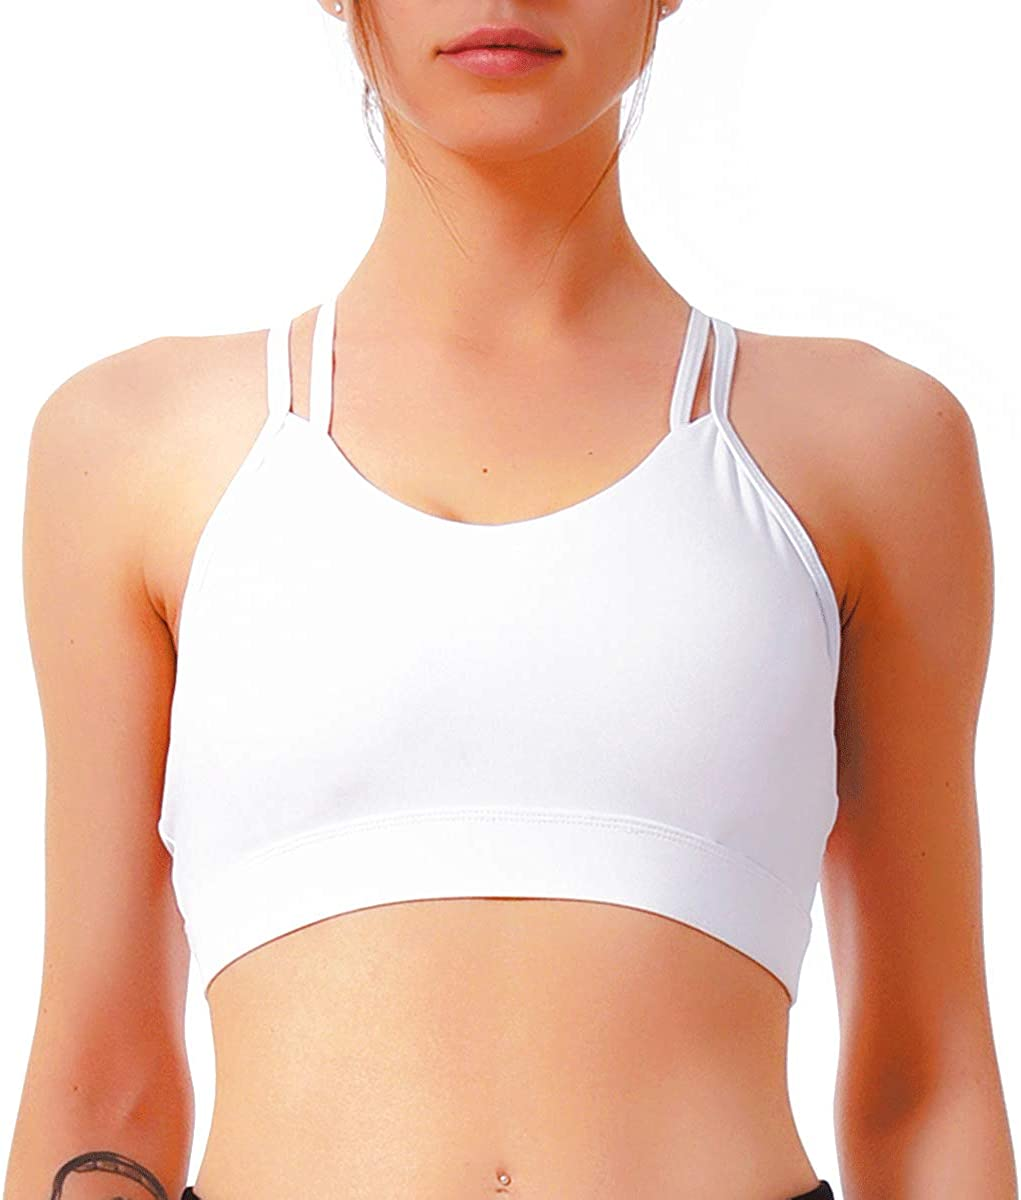 Yasco Strappy Sports Bras for Women Workout Yoga Bra Top Padded Medium Support Low Impact